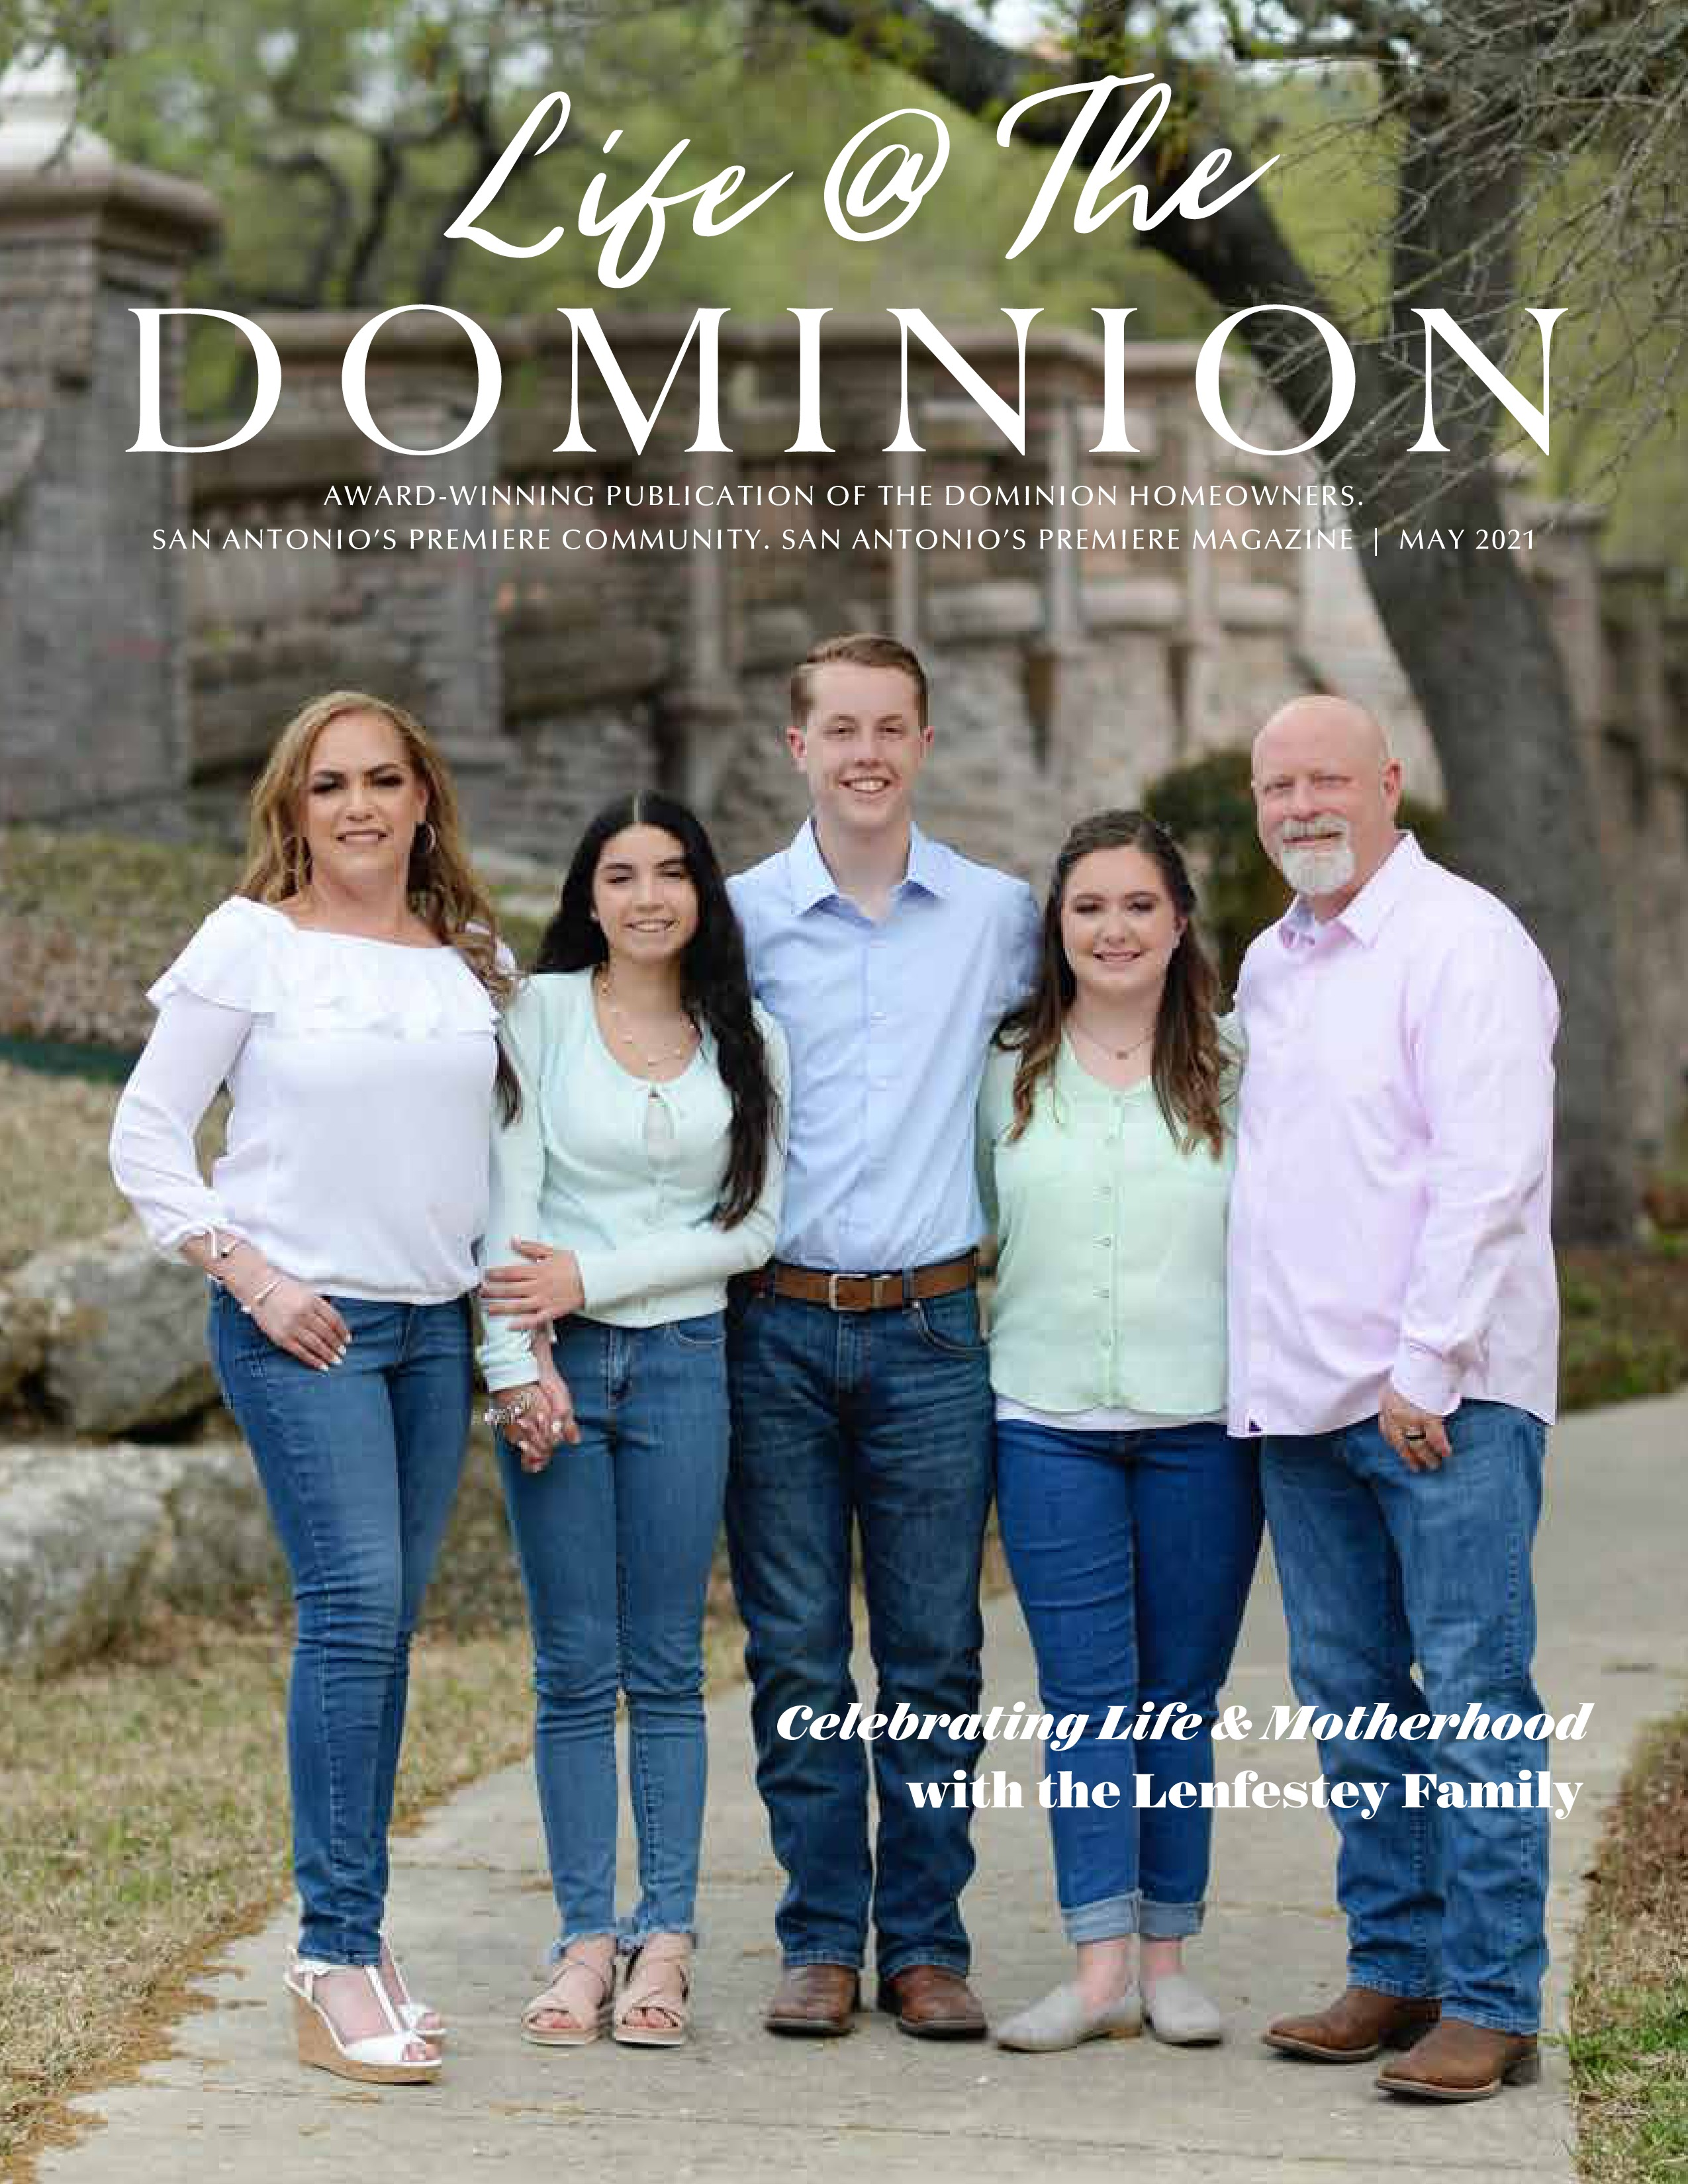 Life at The Dominion 2021-05-01